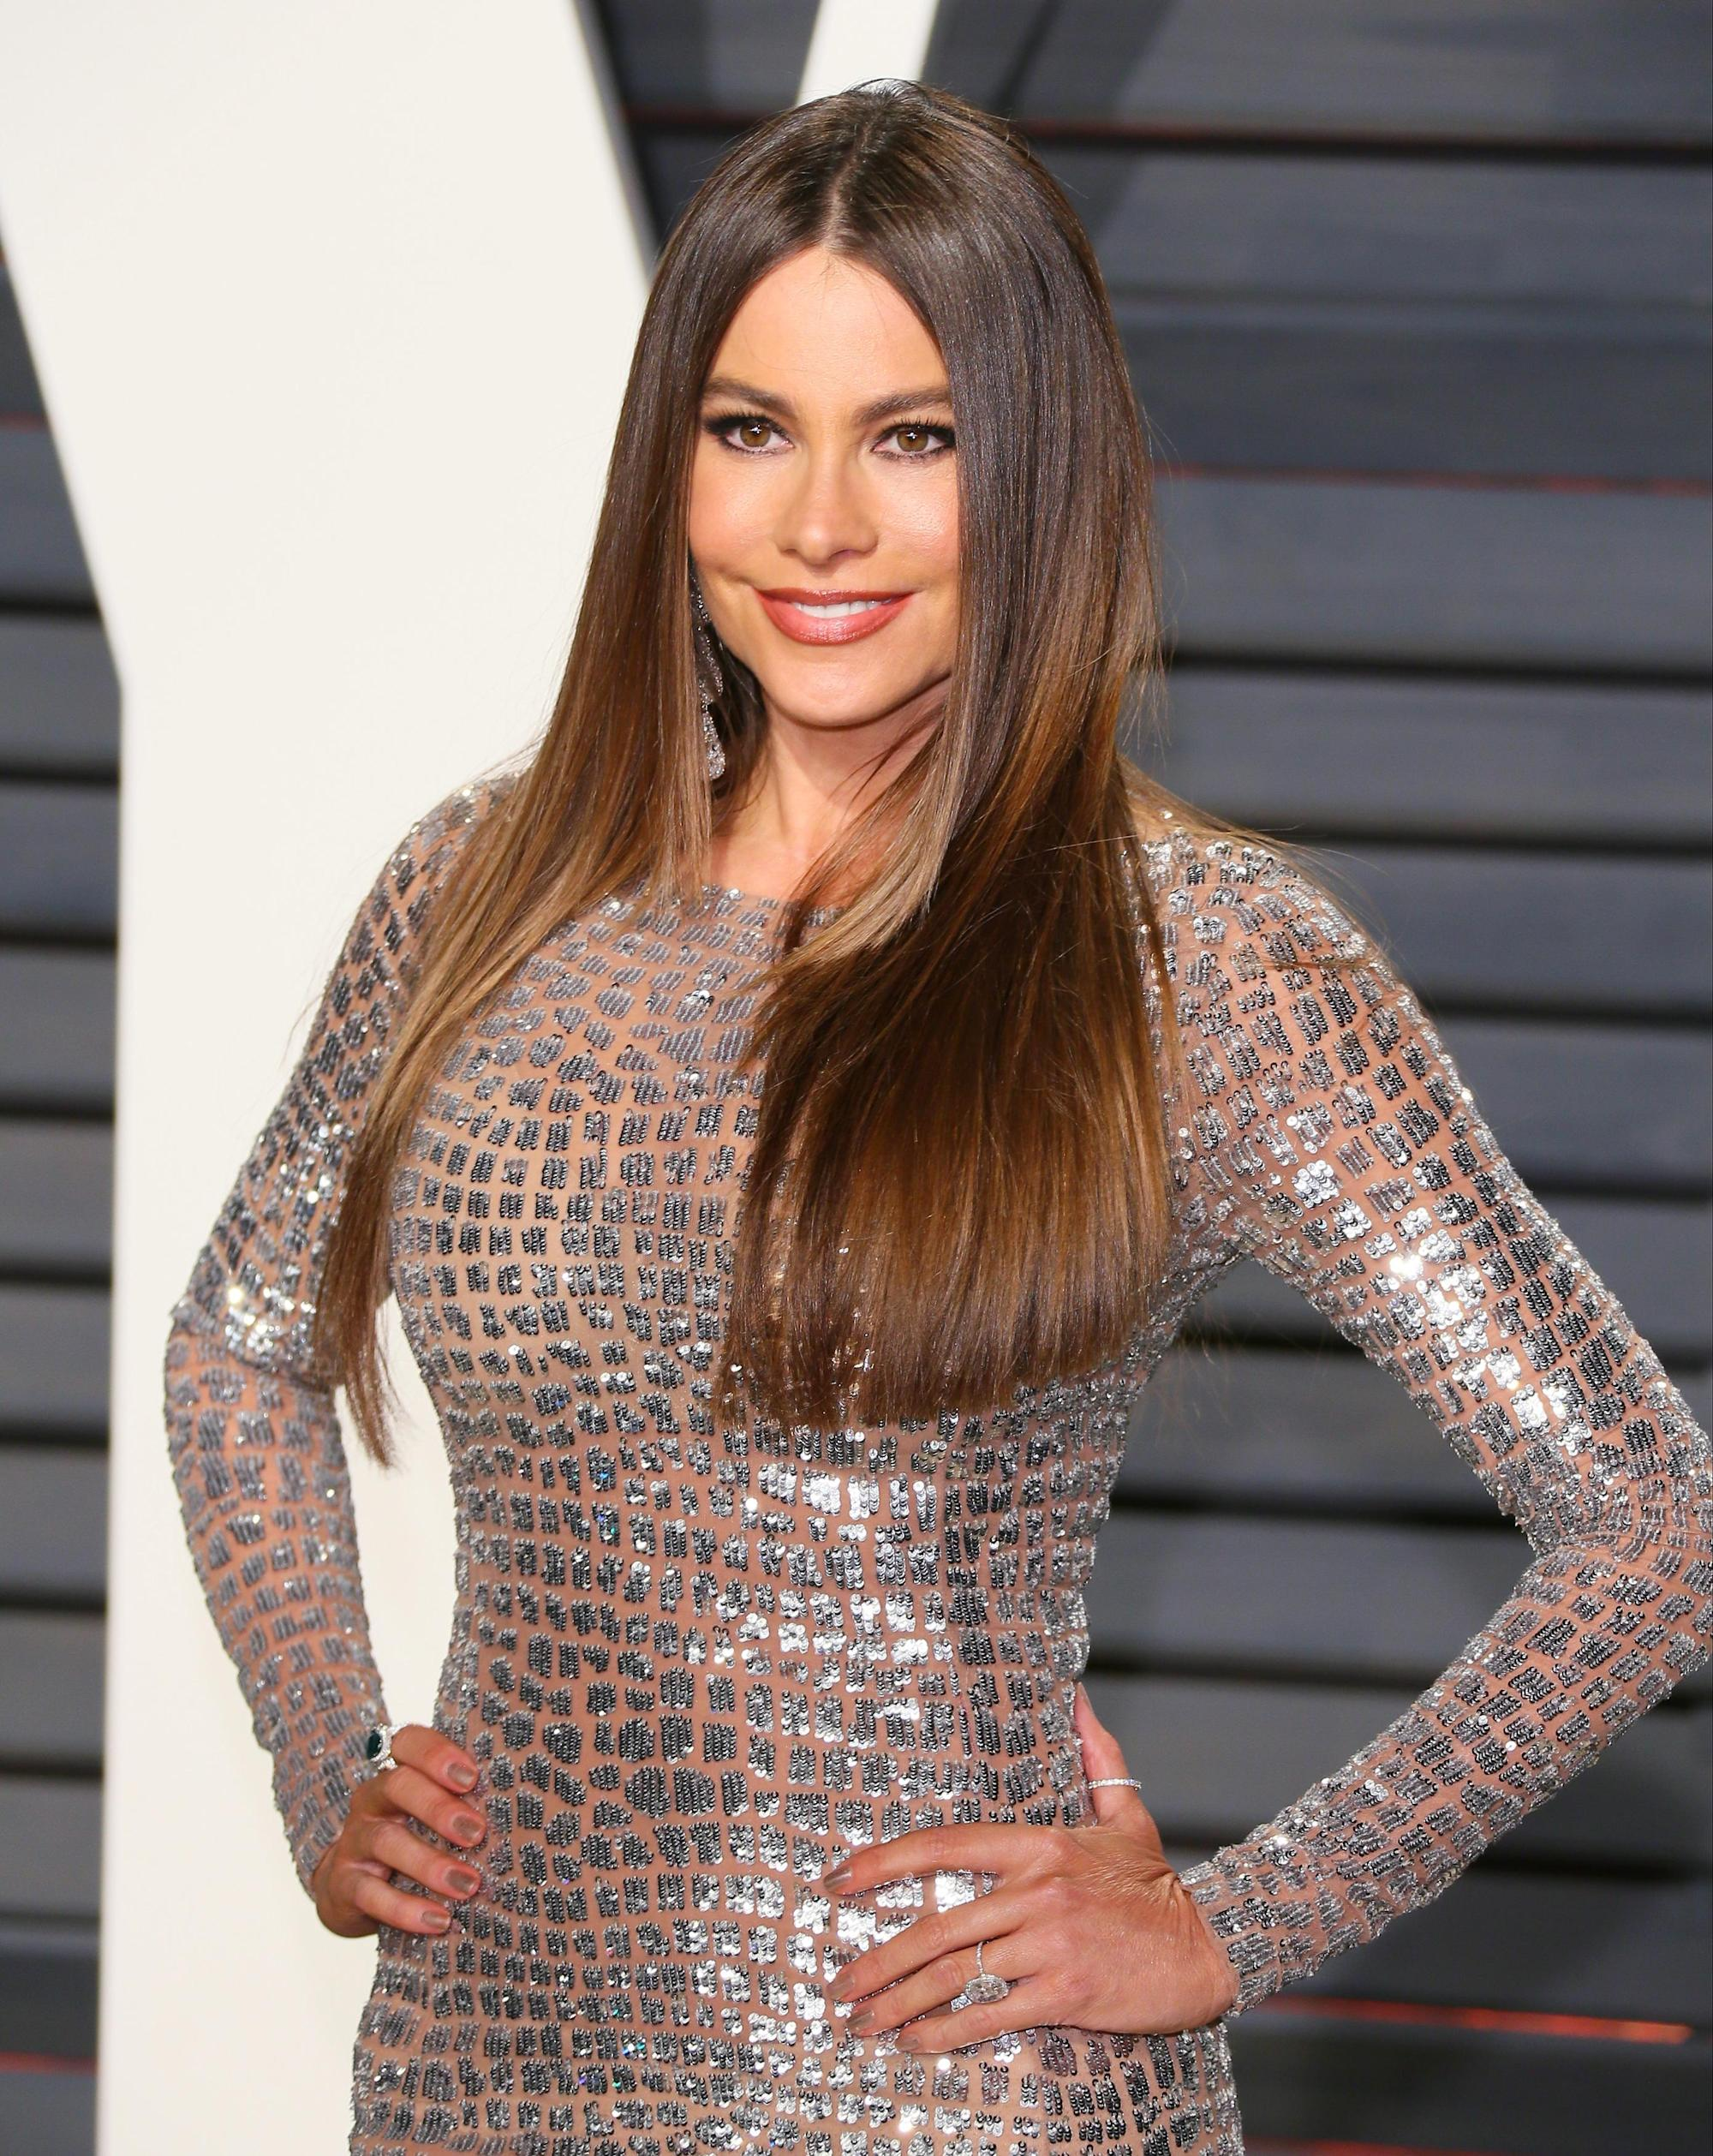 Sofia Vergara, 45, poses COMPLETELY NAKED and flaunts